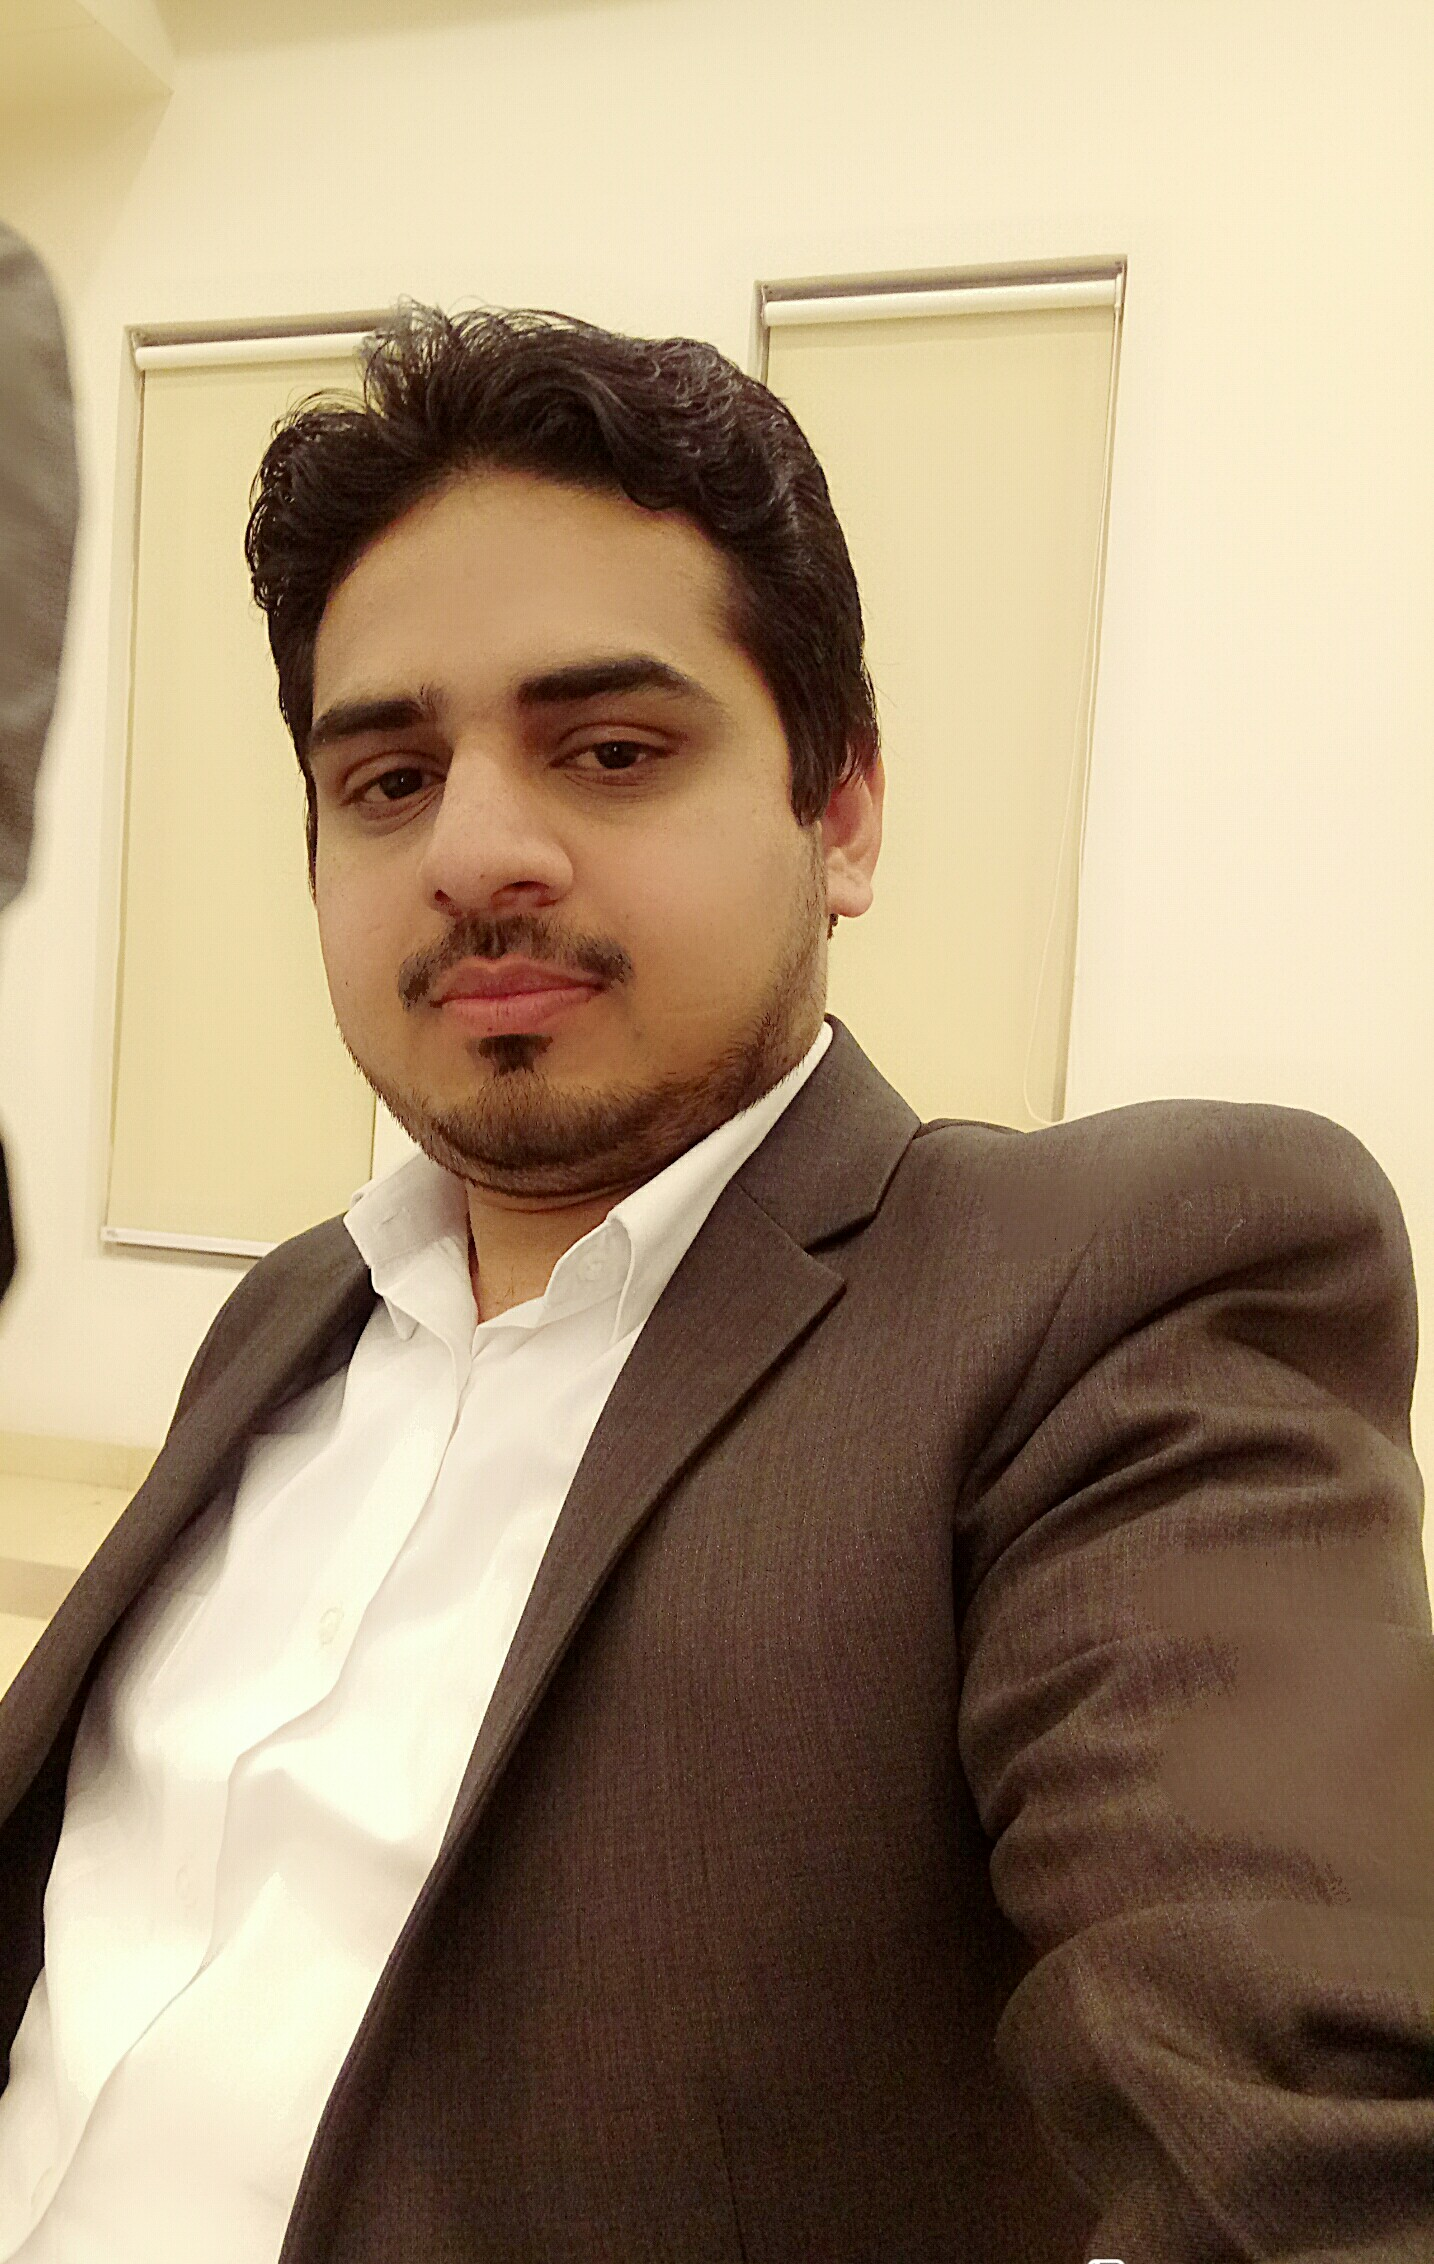 Profile picture of Muhammad zeeshan